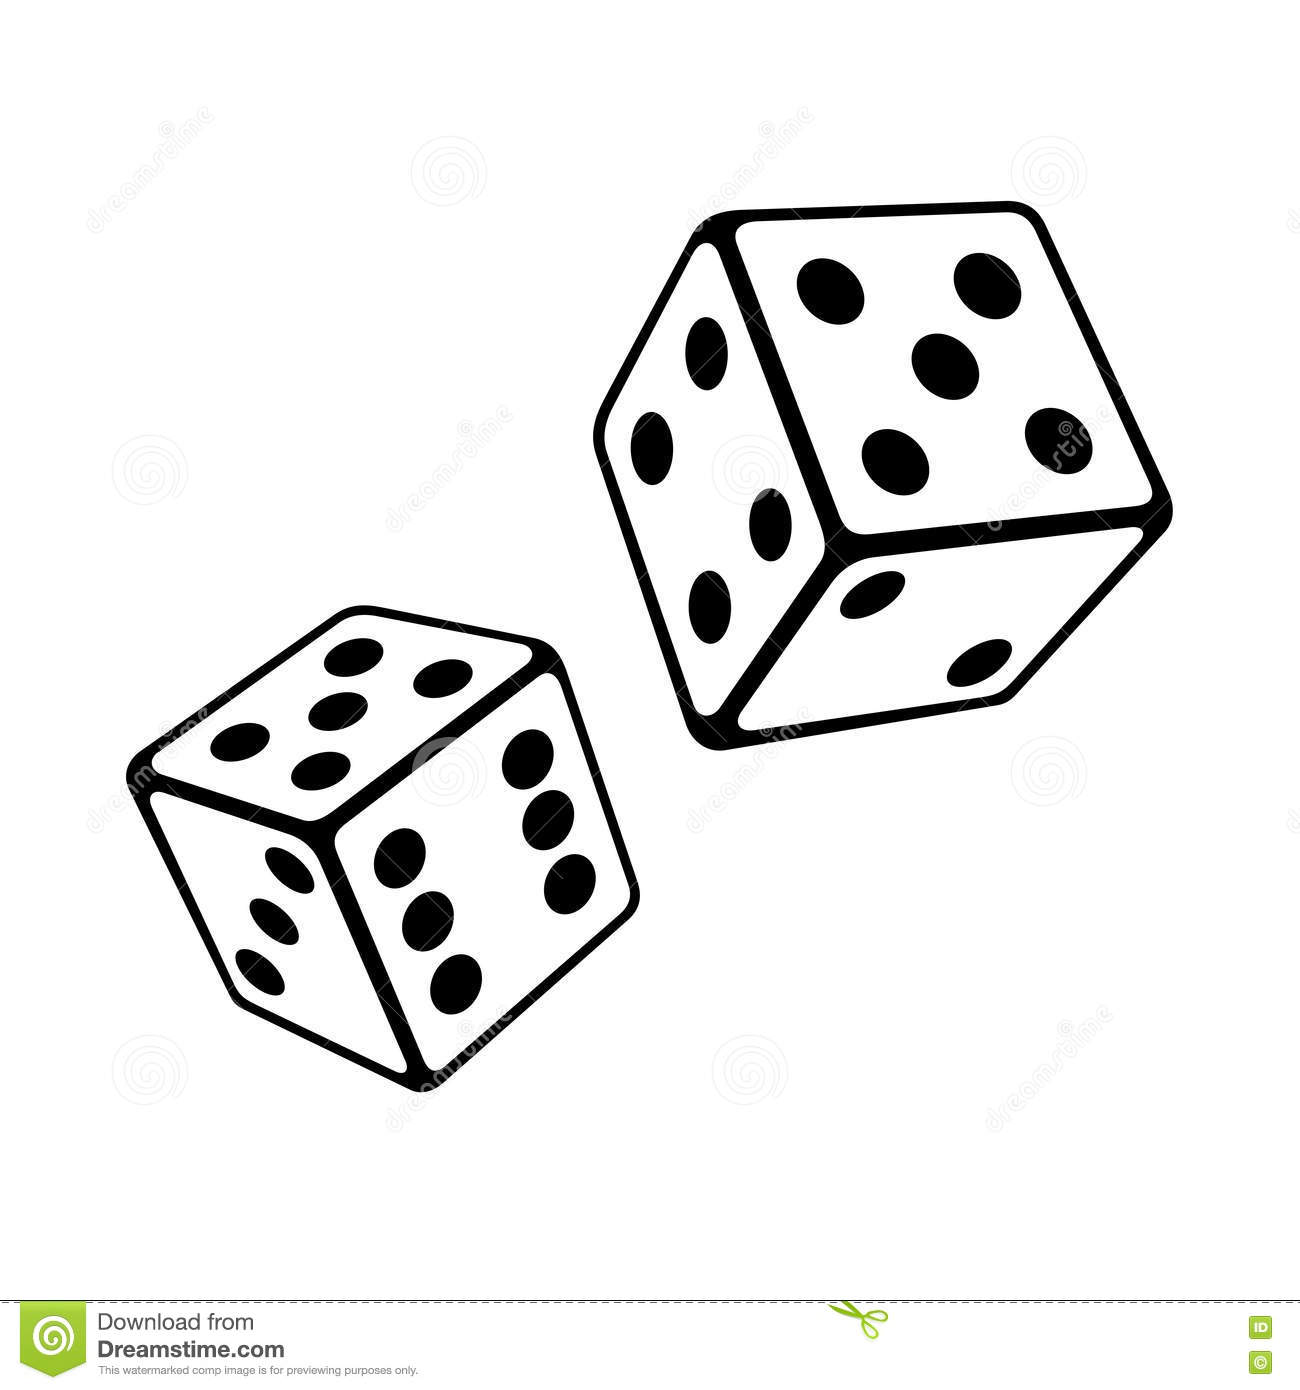 Two Dice Cubes On White Background. Vector Stock Vector.